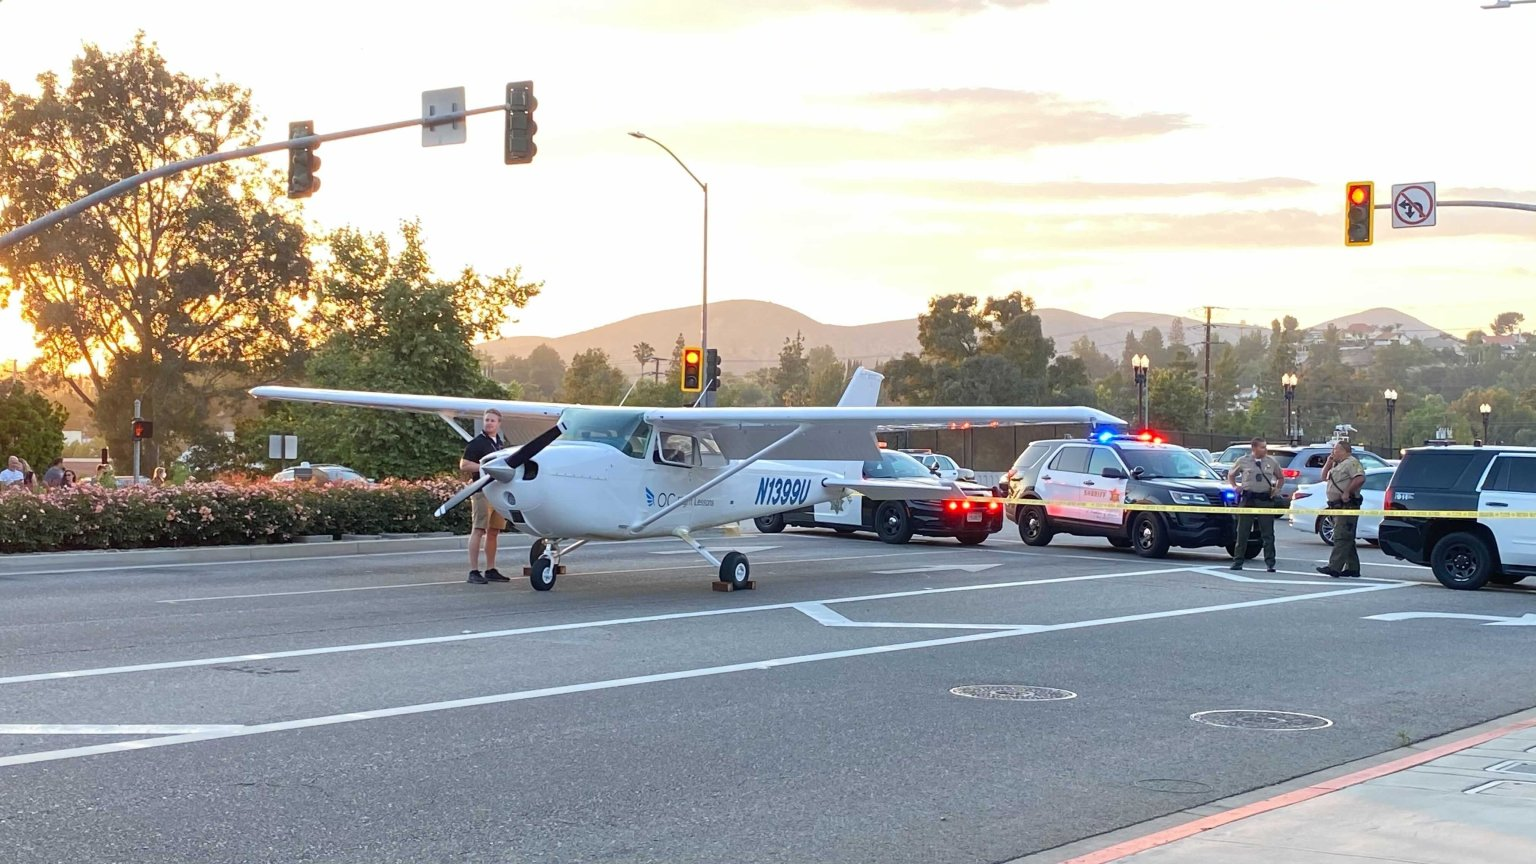 Plane makes emergency landing on freeway, no injuries reported